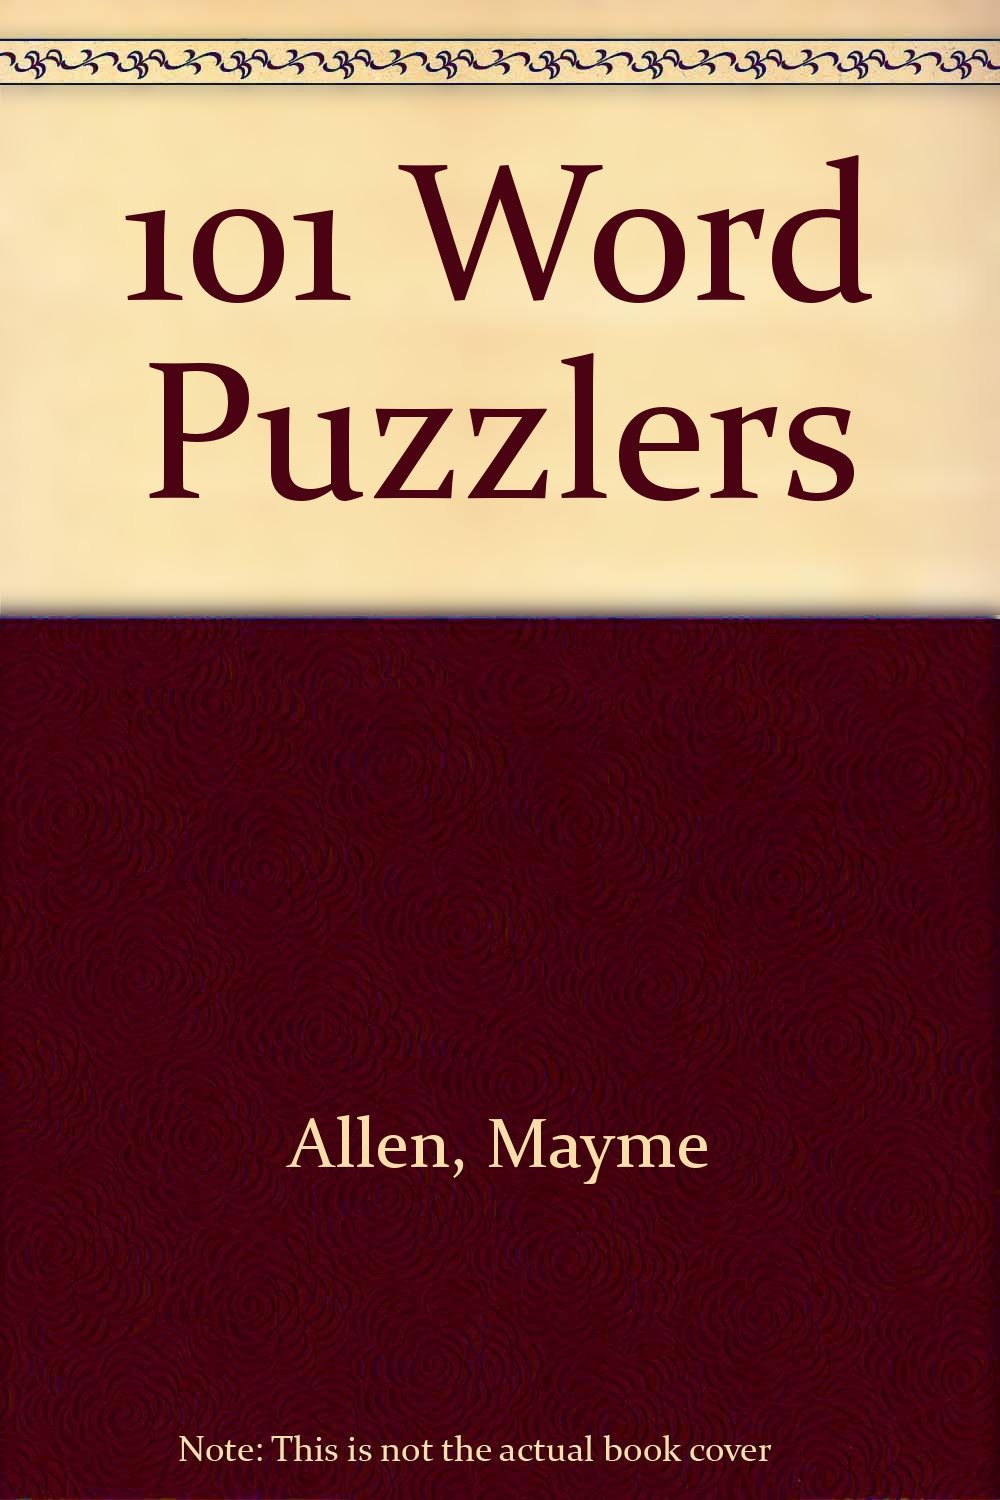 101 Word Puzzlers: Exciting New Challenges for Puzzle Enthusiasts: Mayne  Allen, Janine Kelsch: 9780806987224: Amazon.com: Books